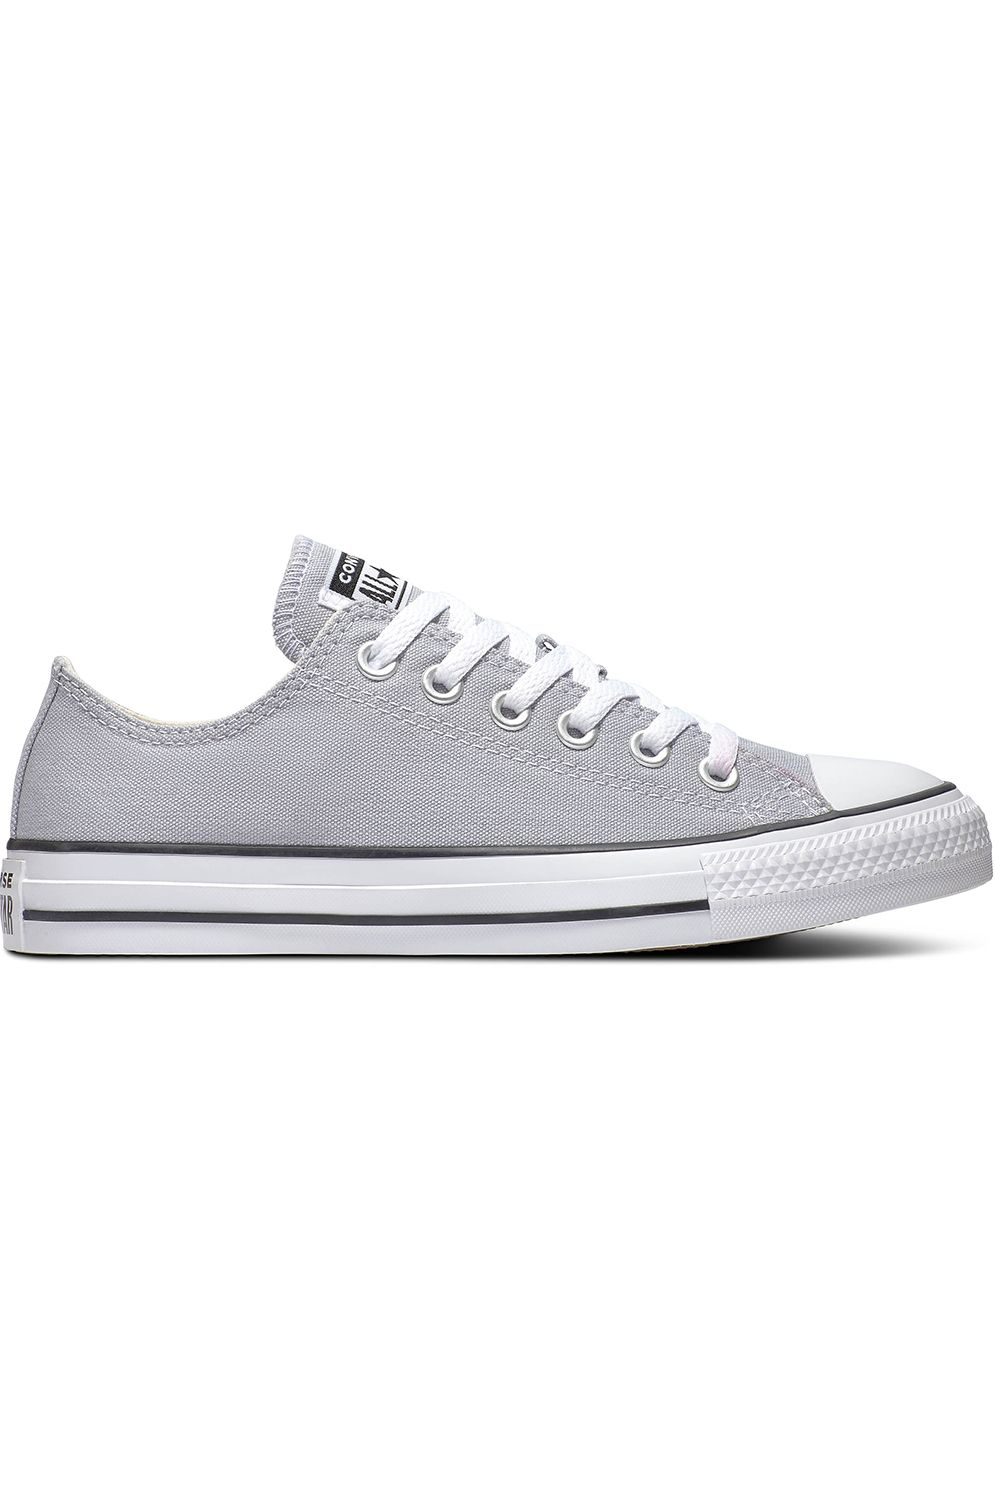 Converse Shoes CHUCK TAYLOR ALL STAR OX Wolf Grey